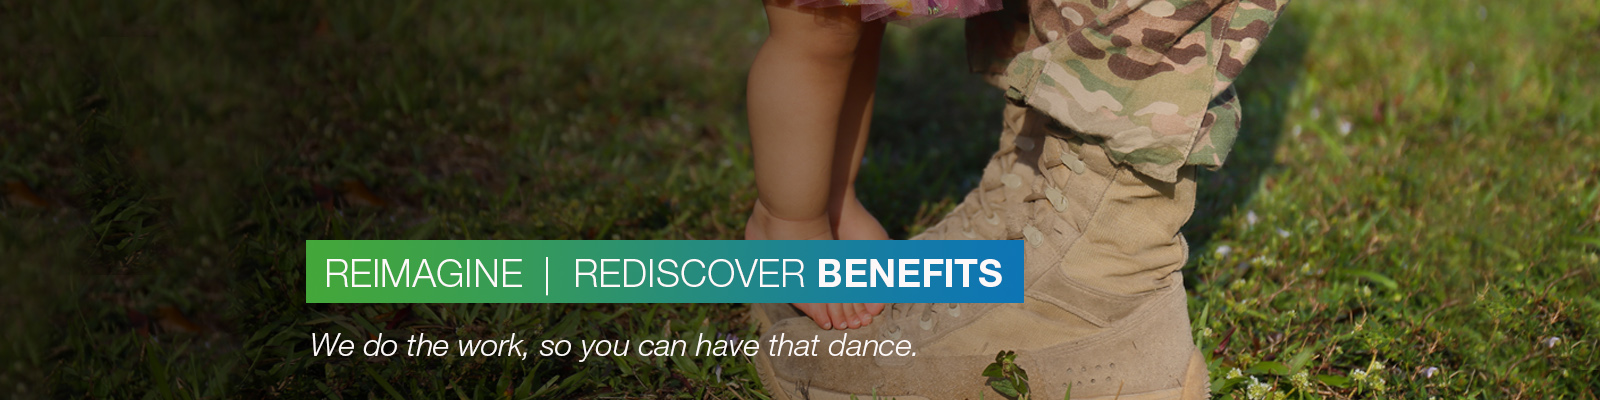 REIMAGINE | REDISCOVER BENEFITS: We do the work, so you can have that dance.